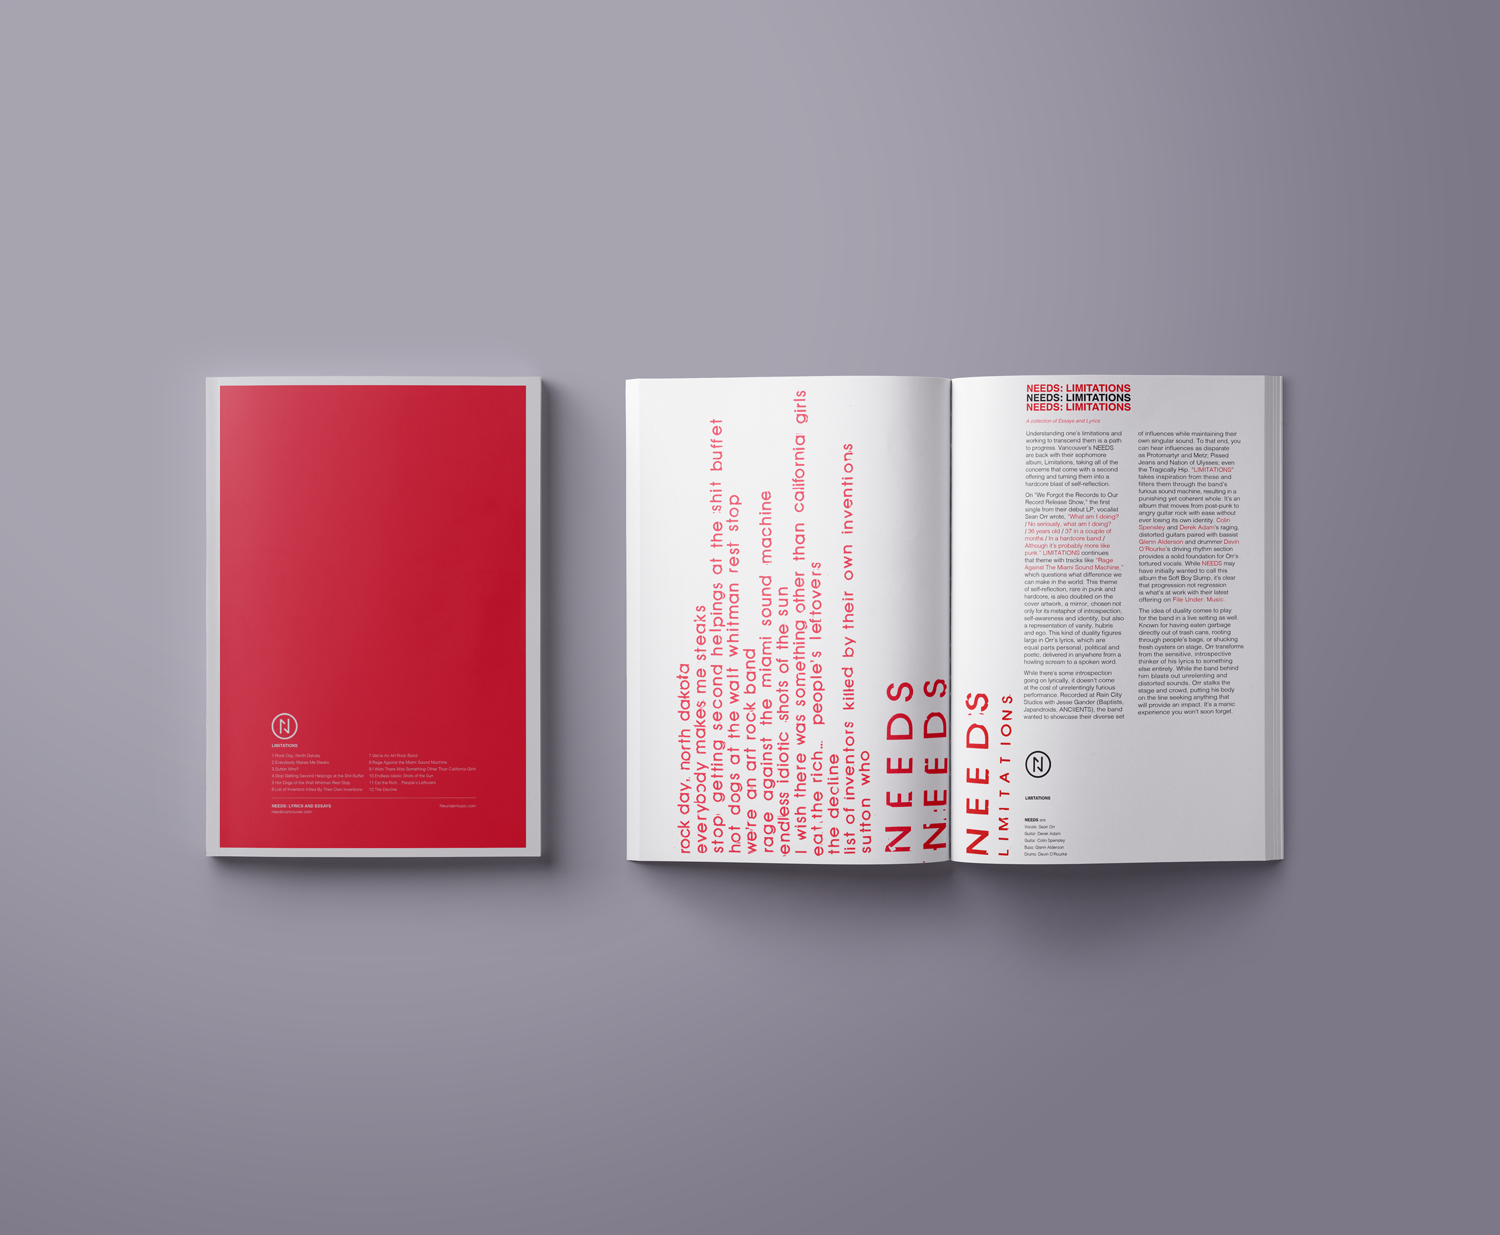 File Under: Music -  NEEDS - Lyric Book - 27 Pages